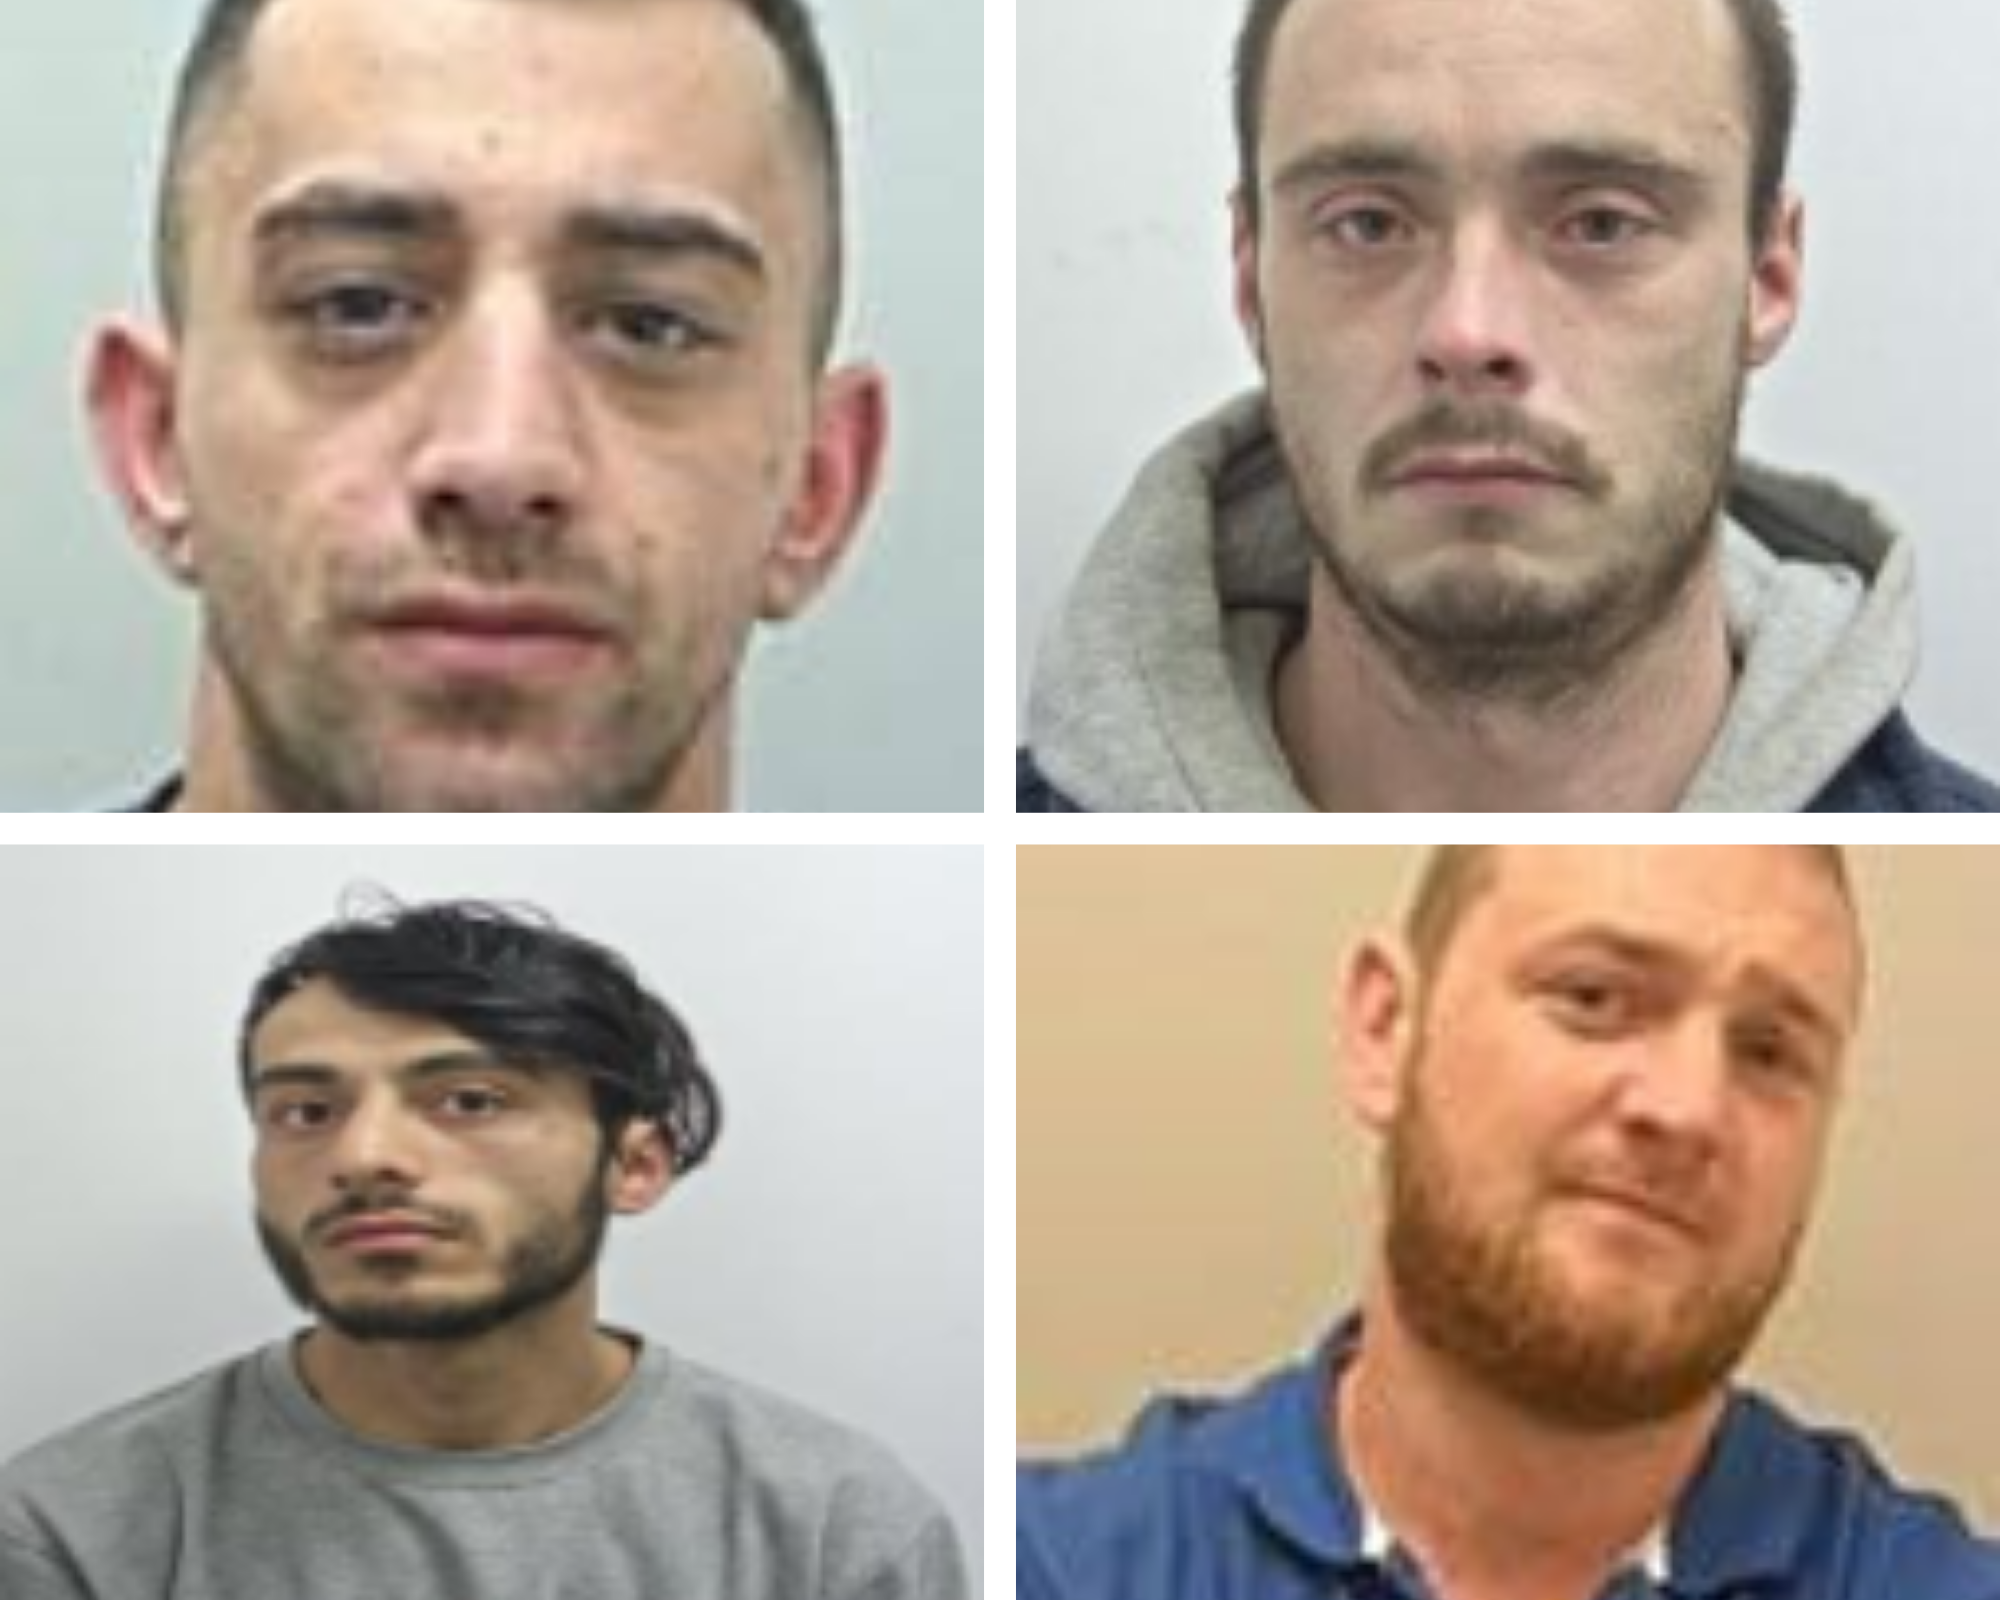 Blackburn and Burnley's most WANTED include man wanted for dangerous arson